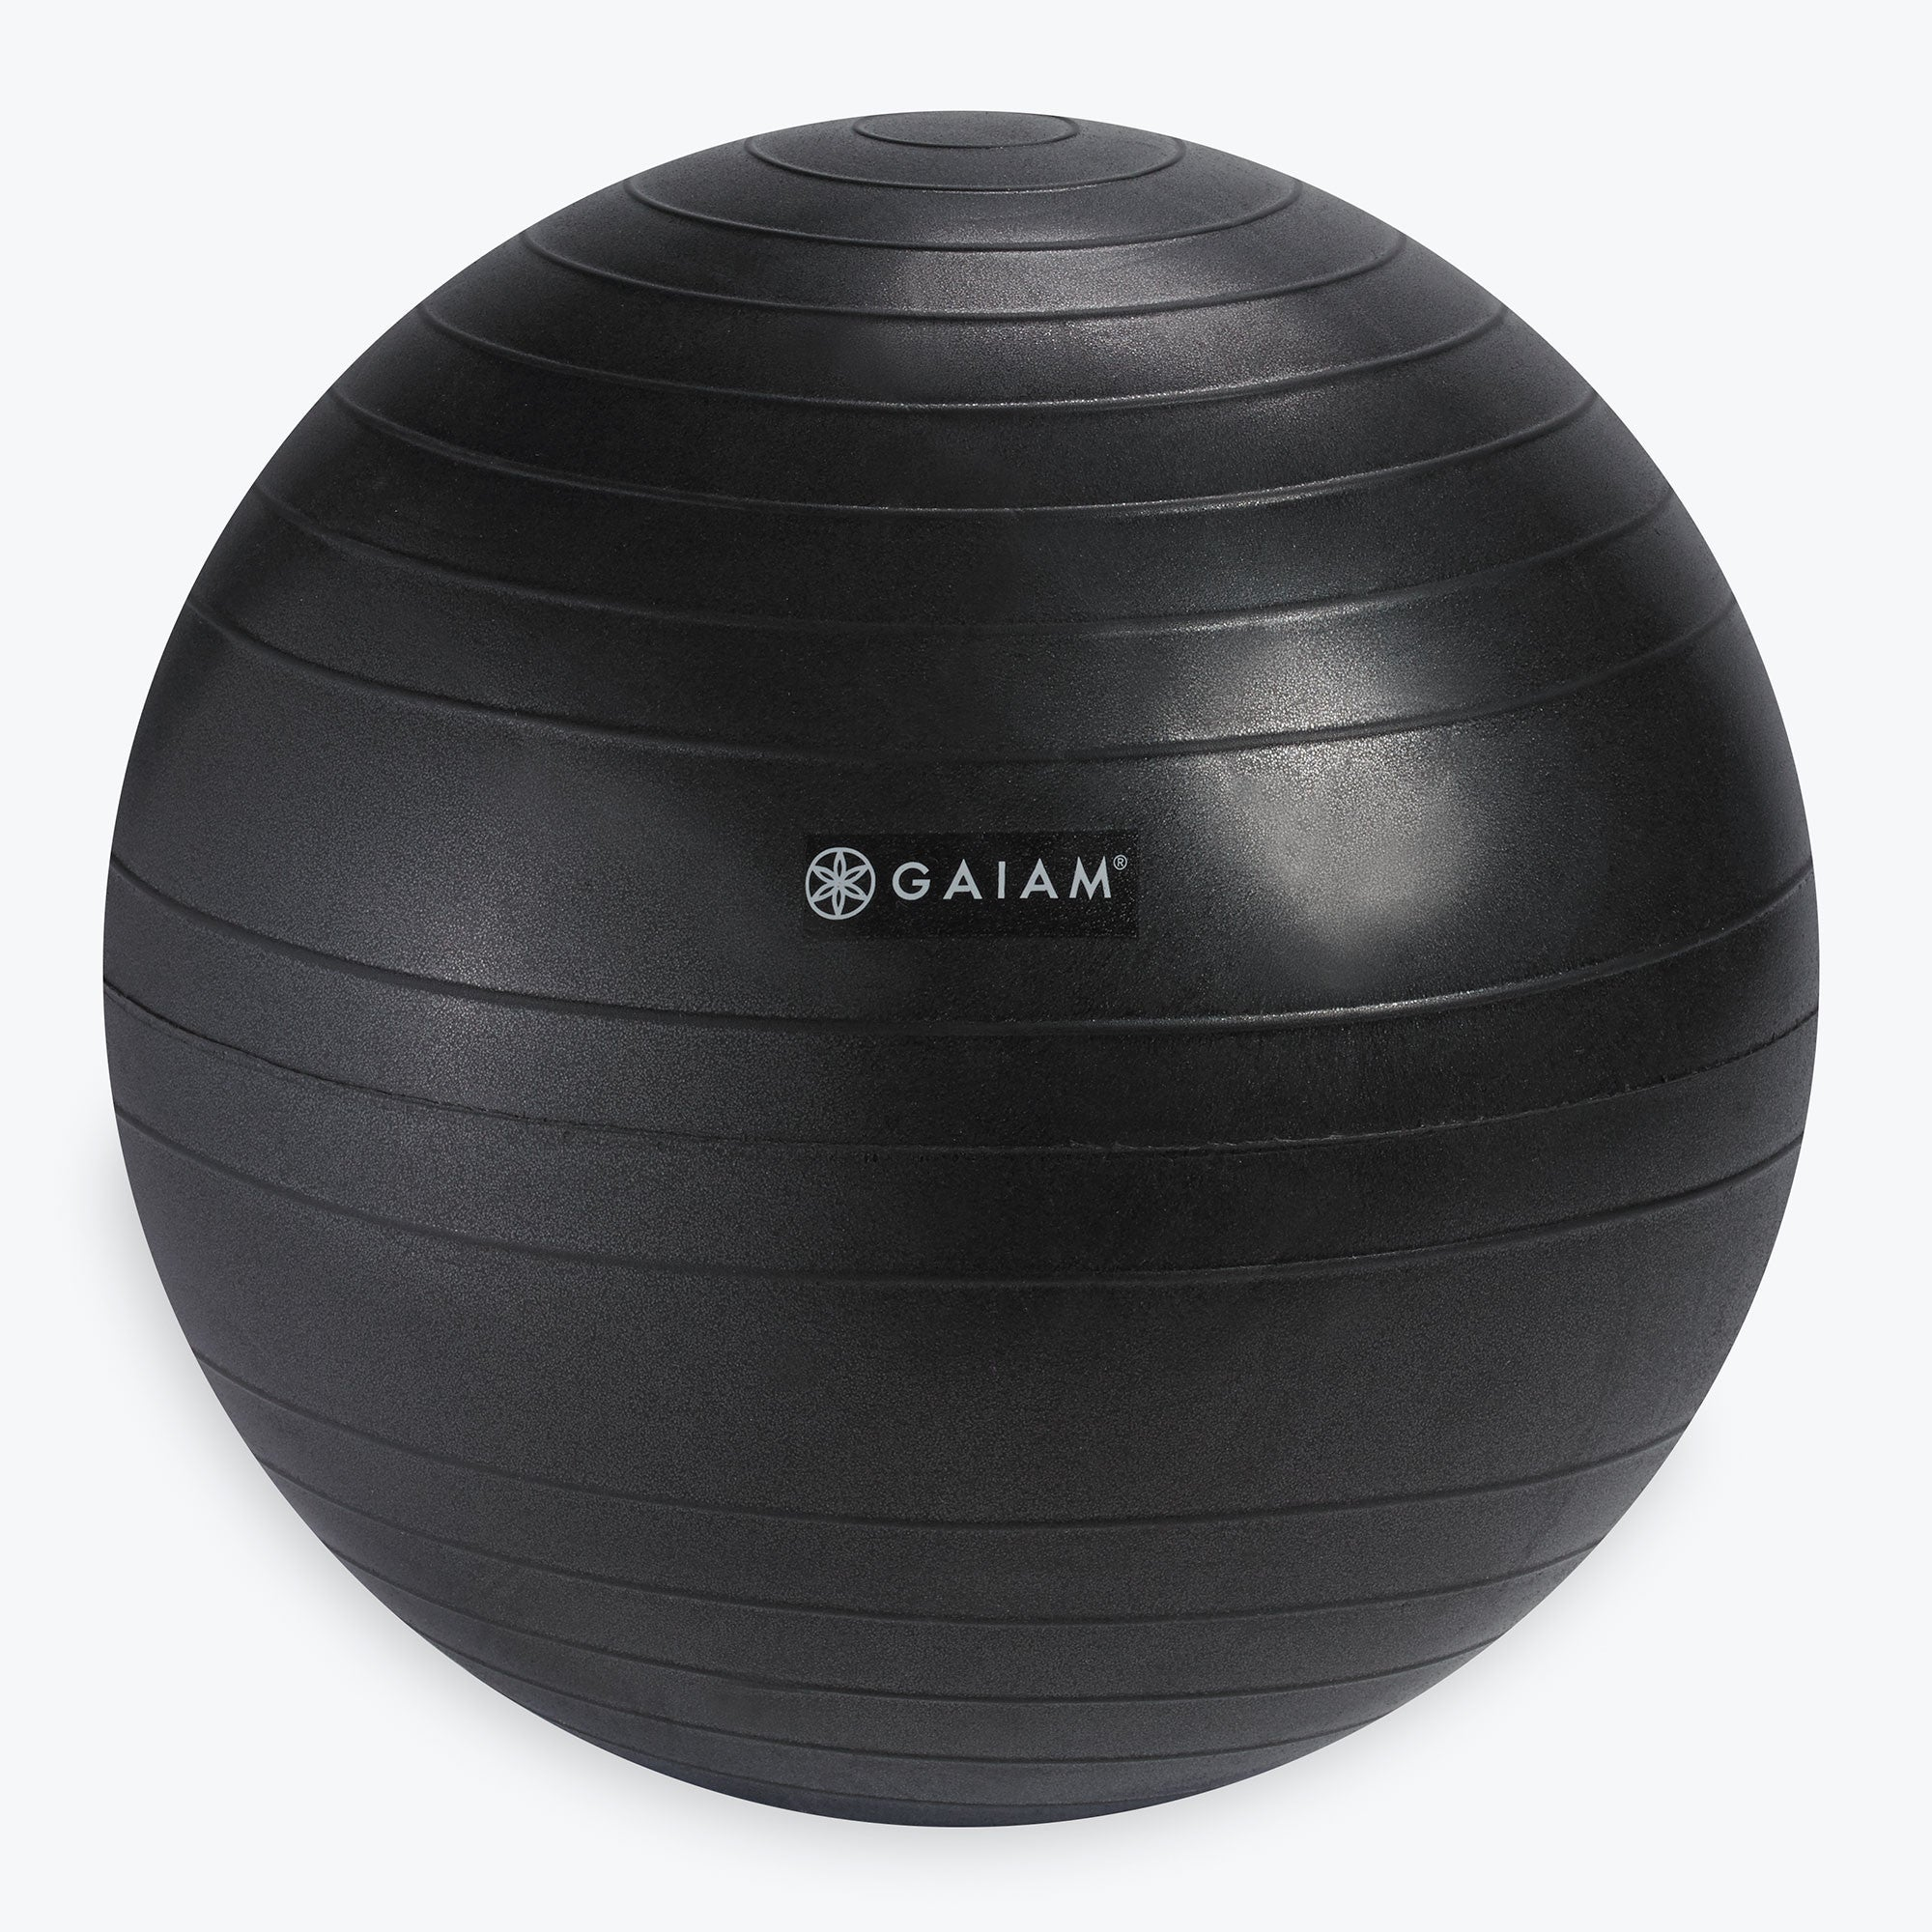 Extra Ball for the Classic Balance Ball Chair 52cm Gaiam